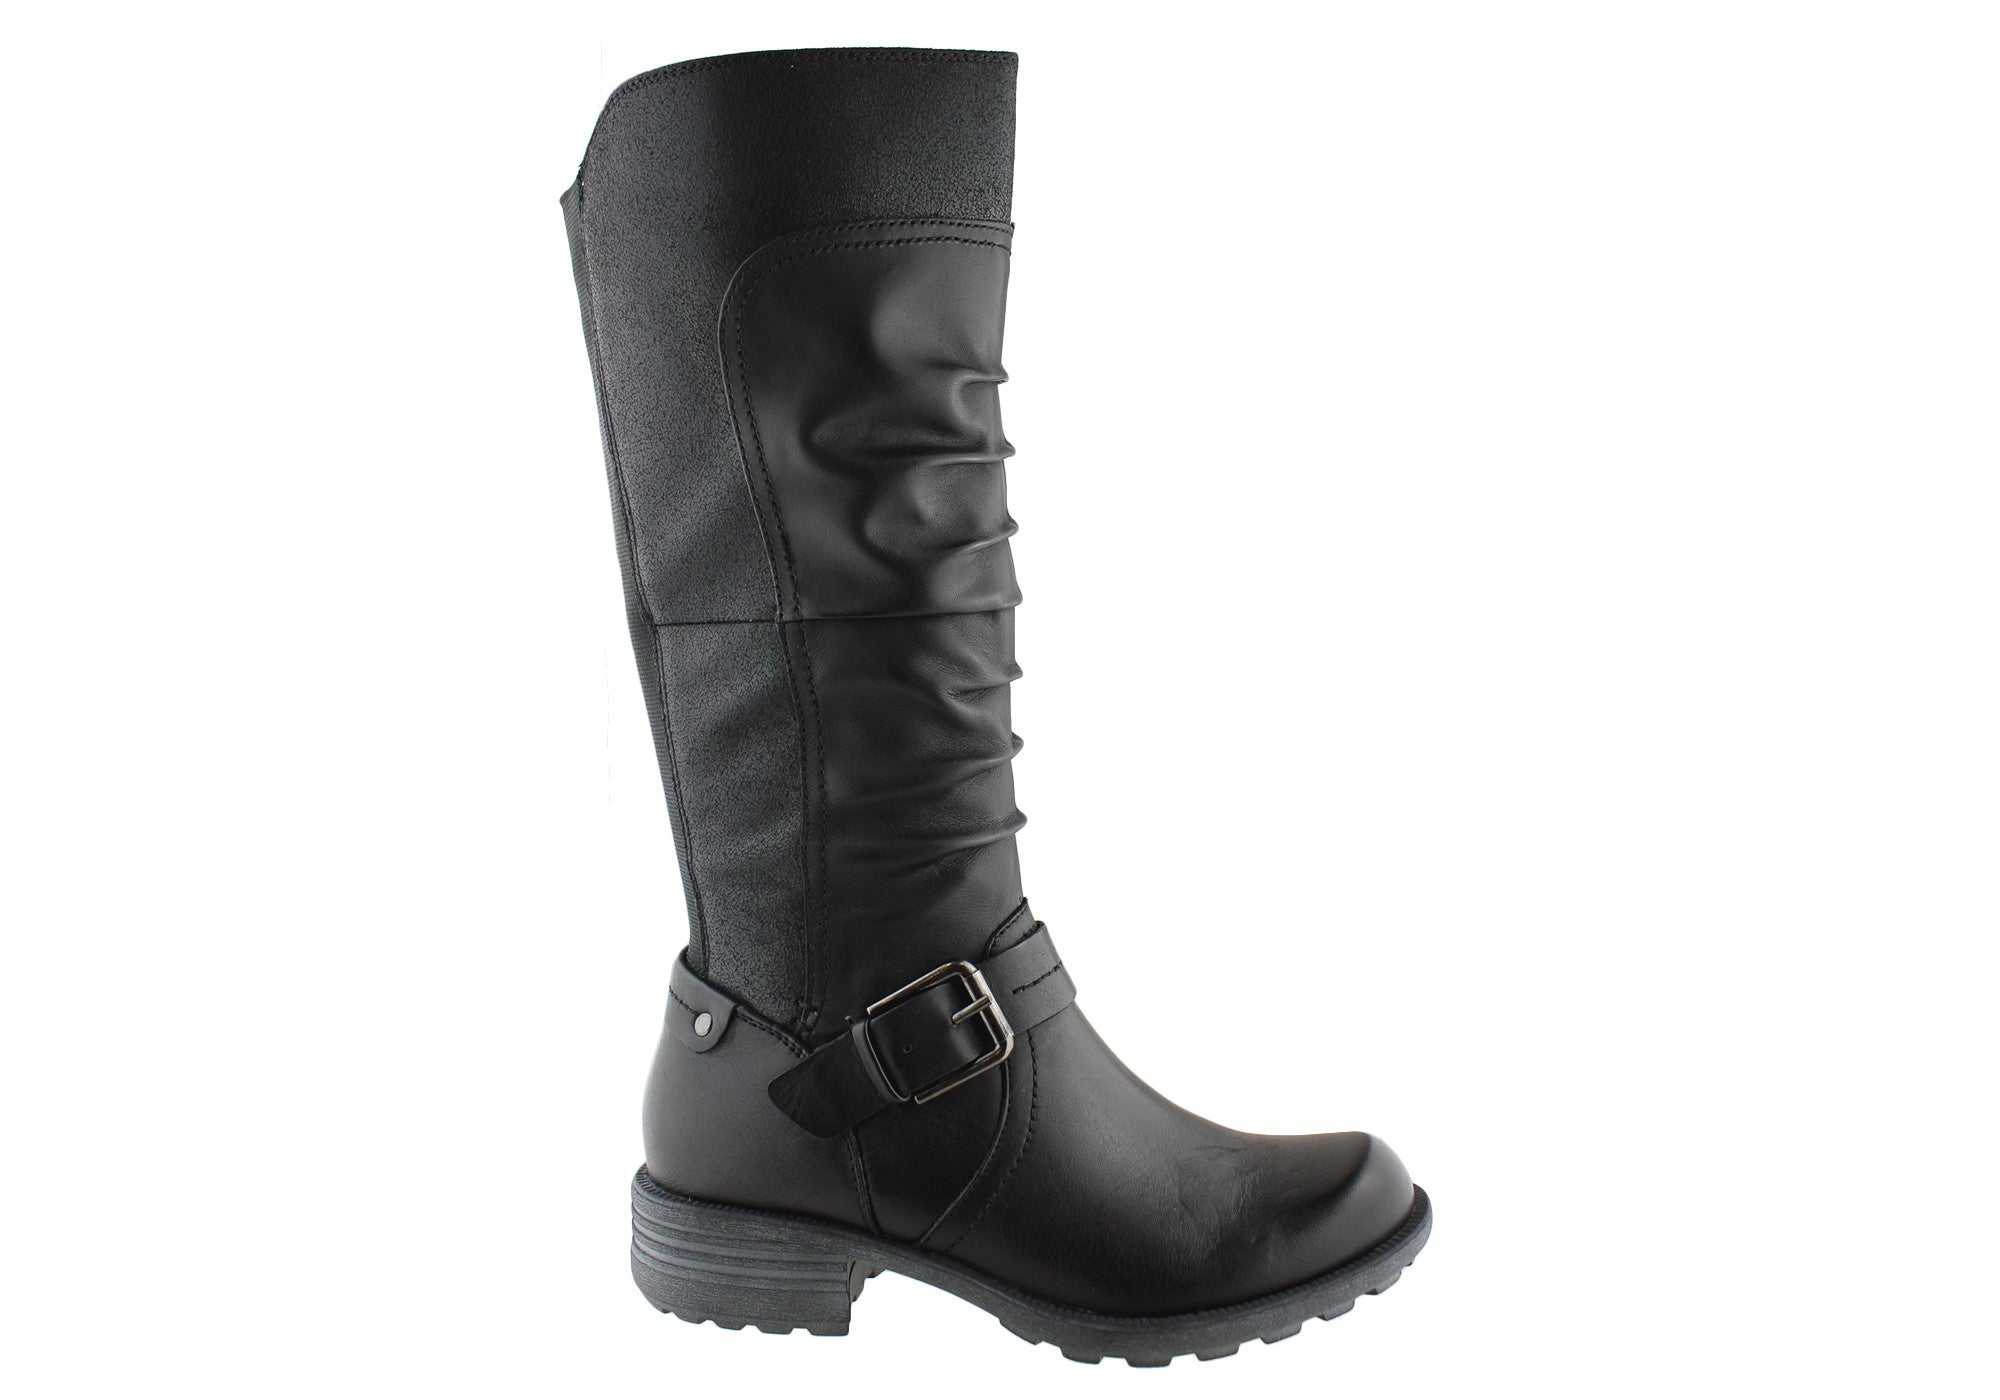 over boots super to heel knee with these for the gallery fall shop a go comfortable comforter are vogue teen low your high